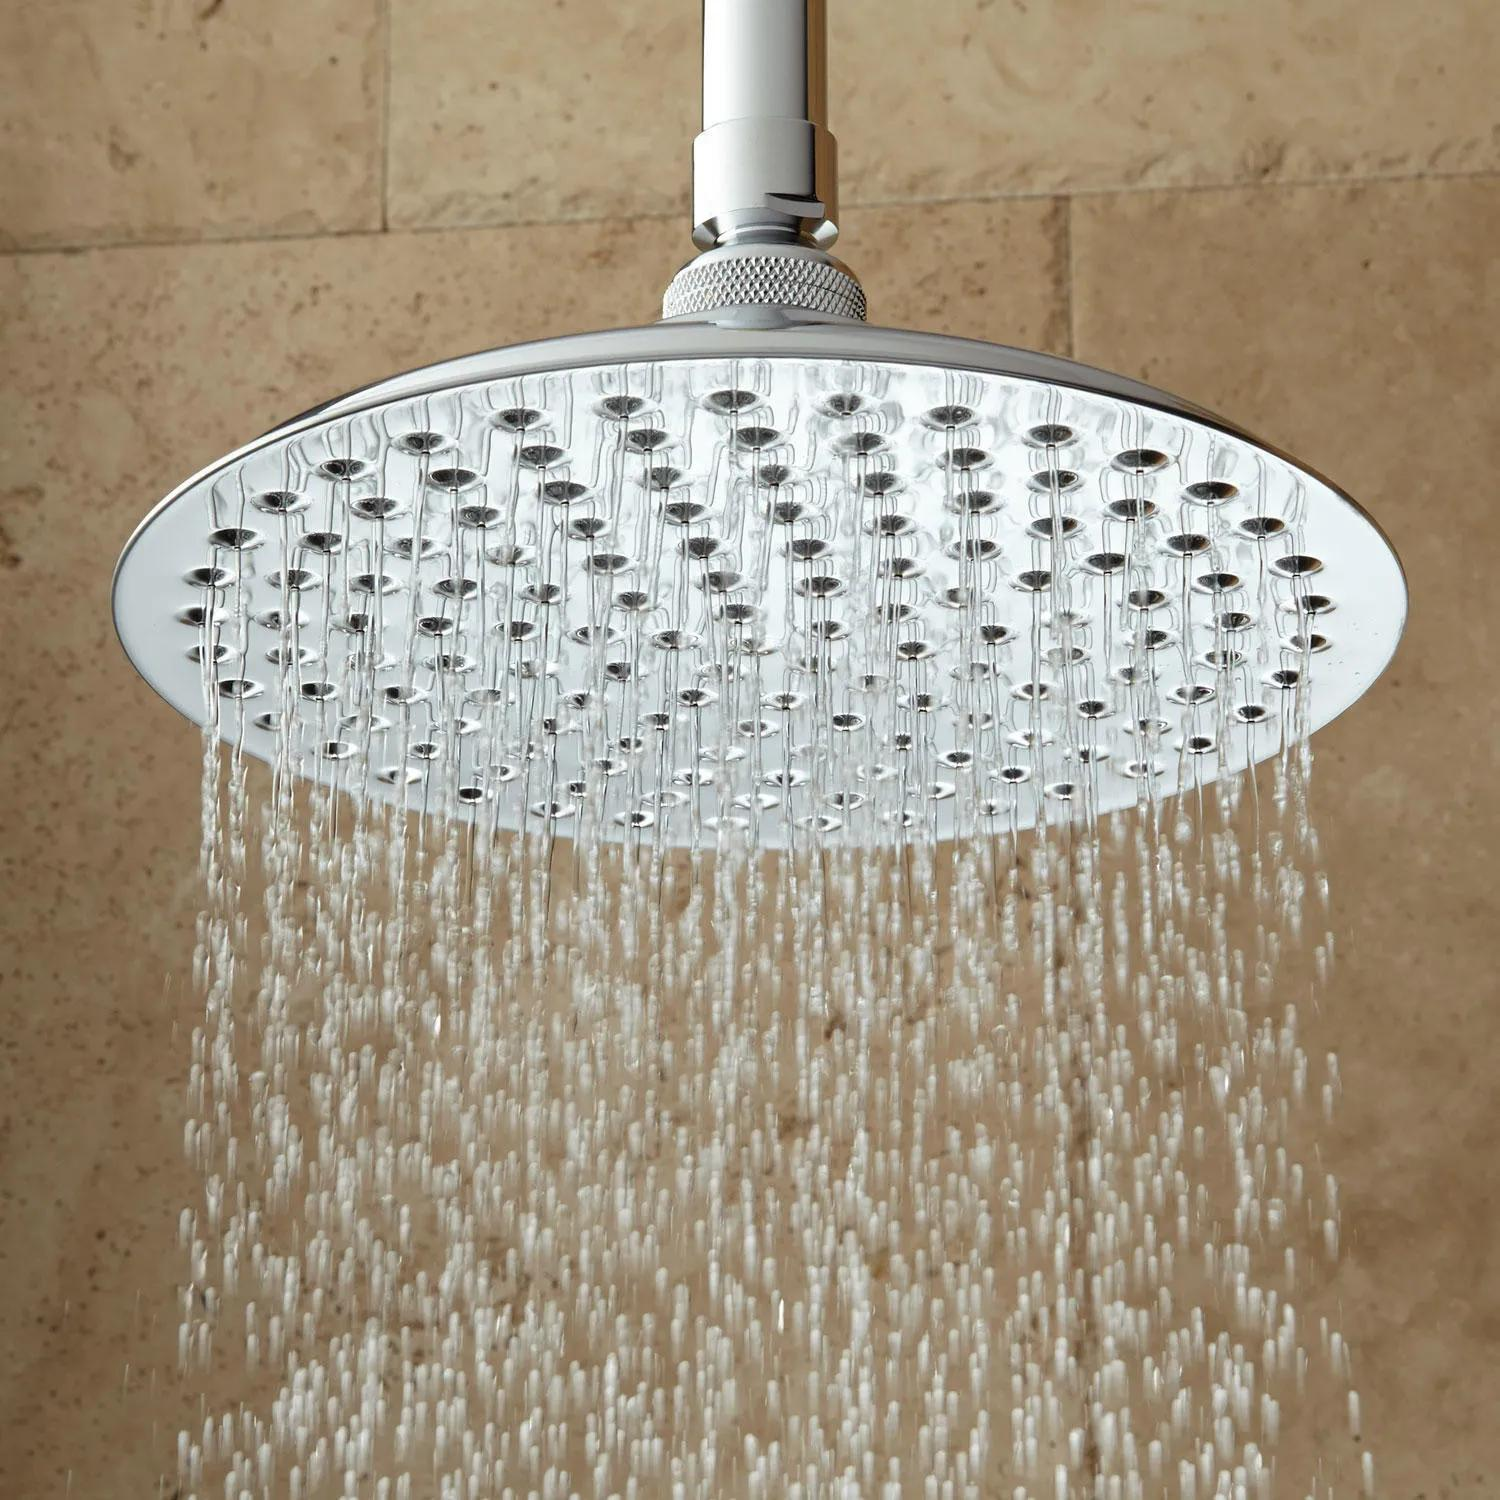 Square Brass Ceiling Mounted Shower Head Rain Arm Outlet Chrome